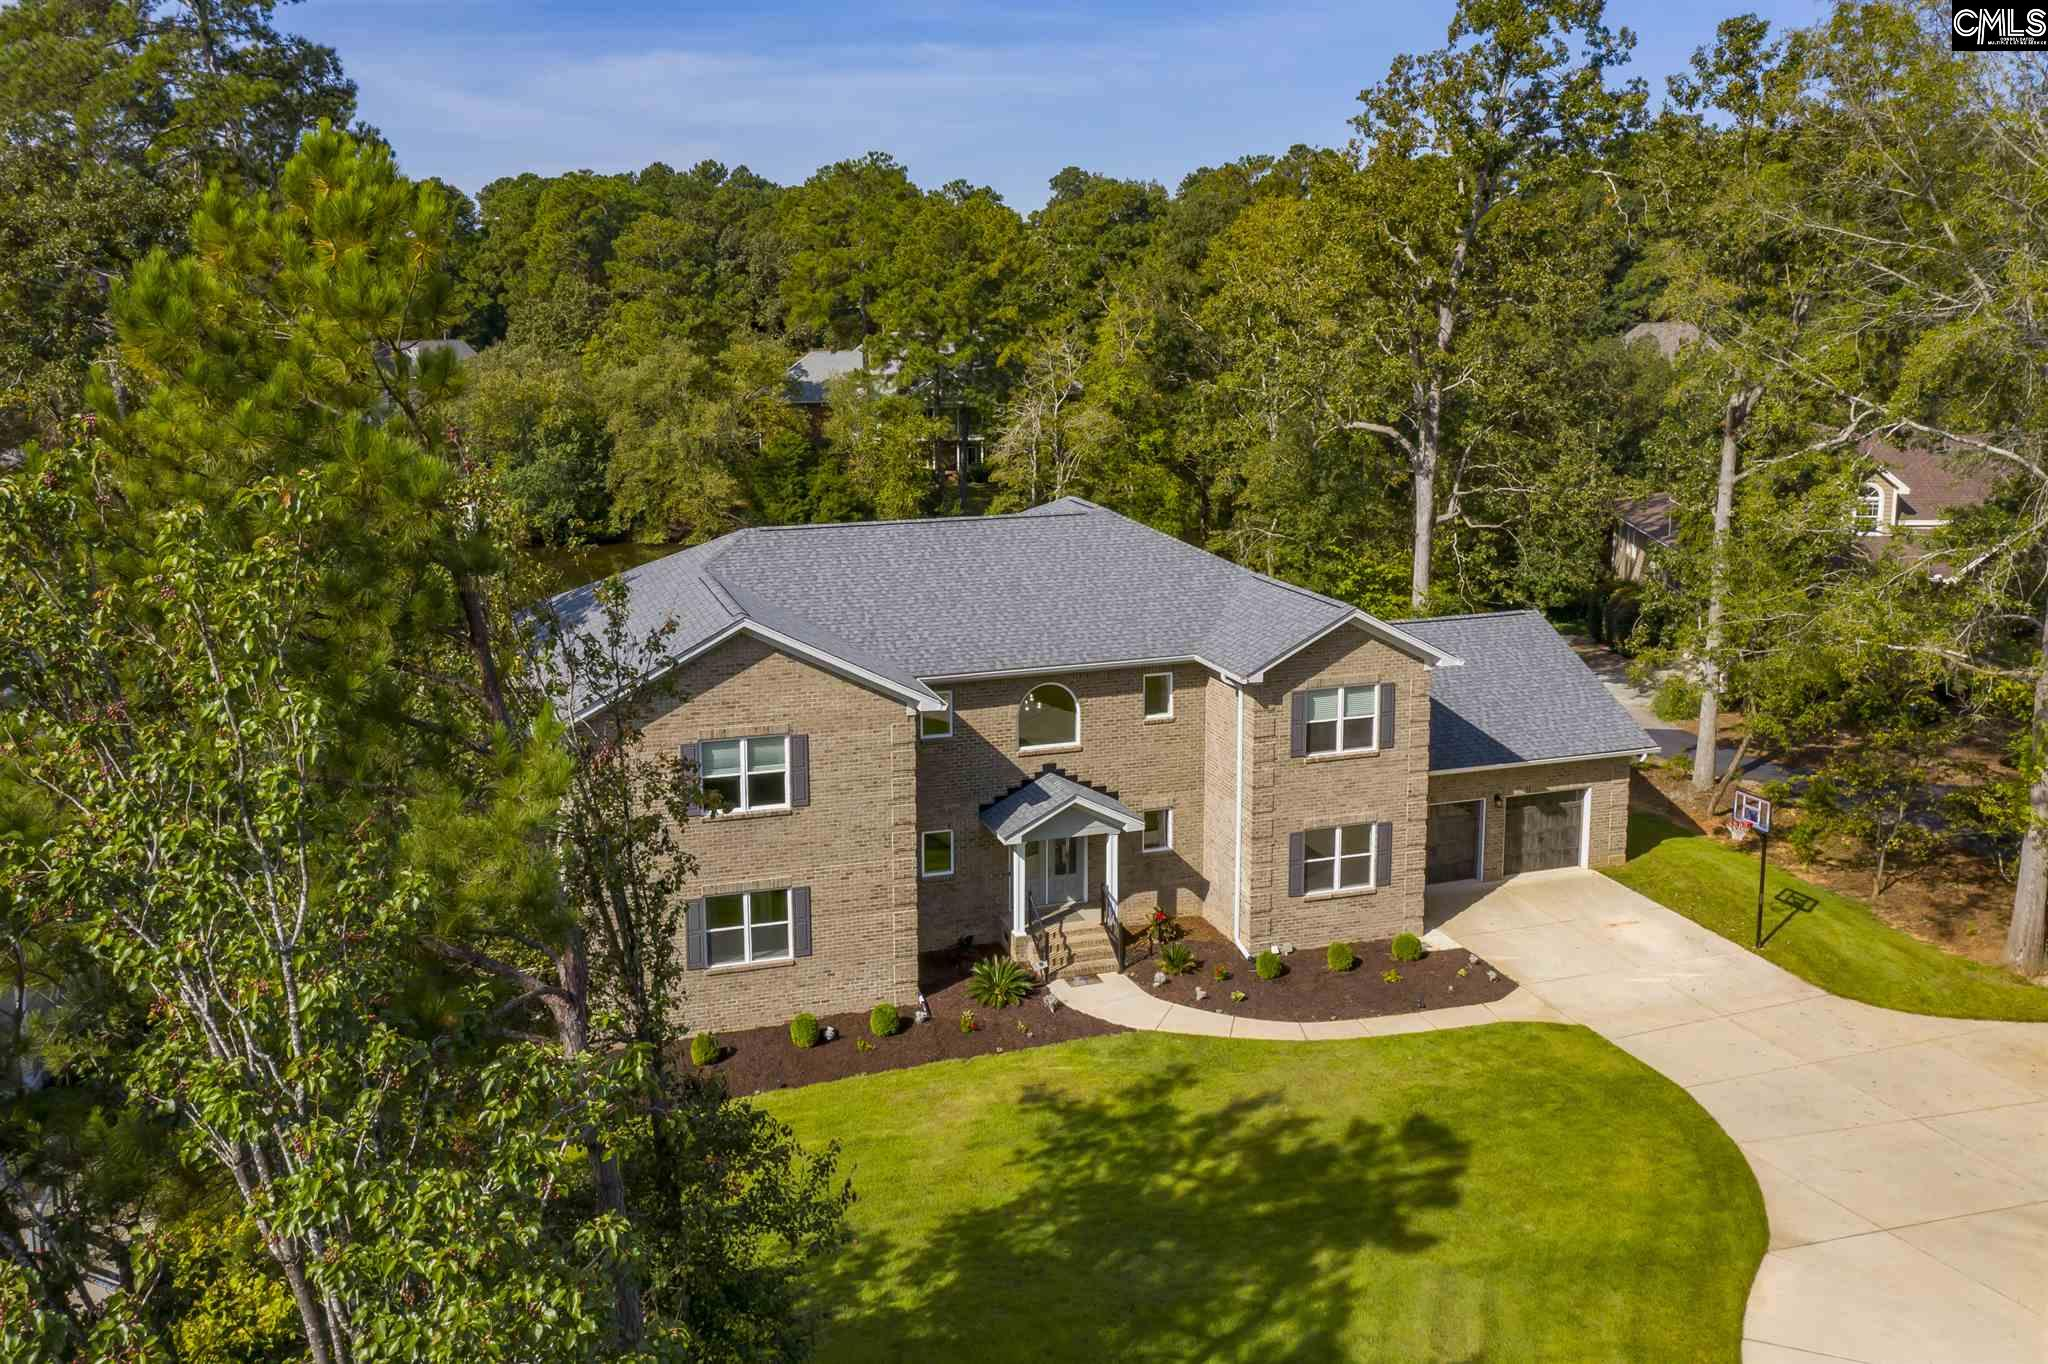 136 Turnberry Lane Lexington, SC 29072